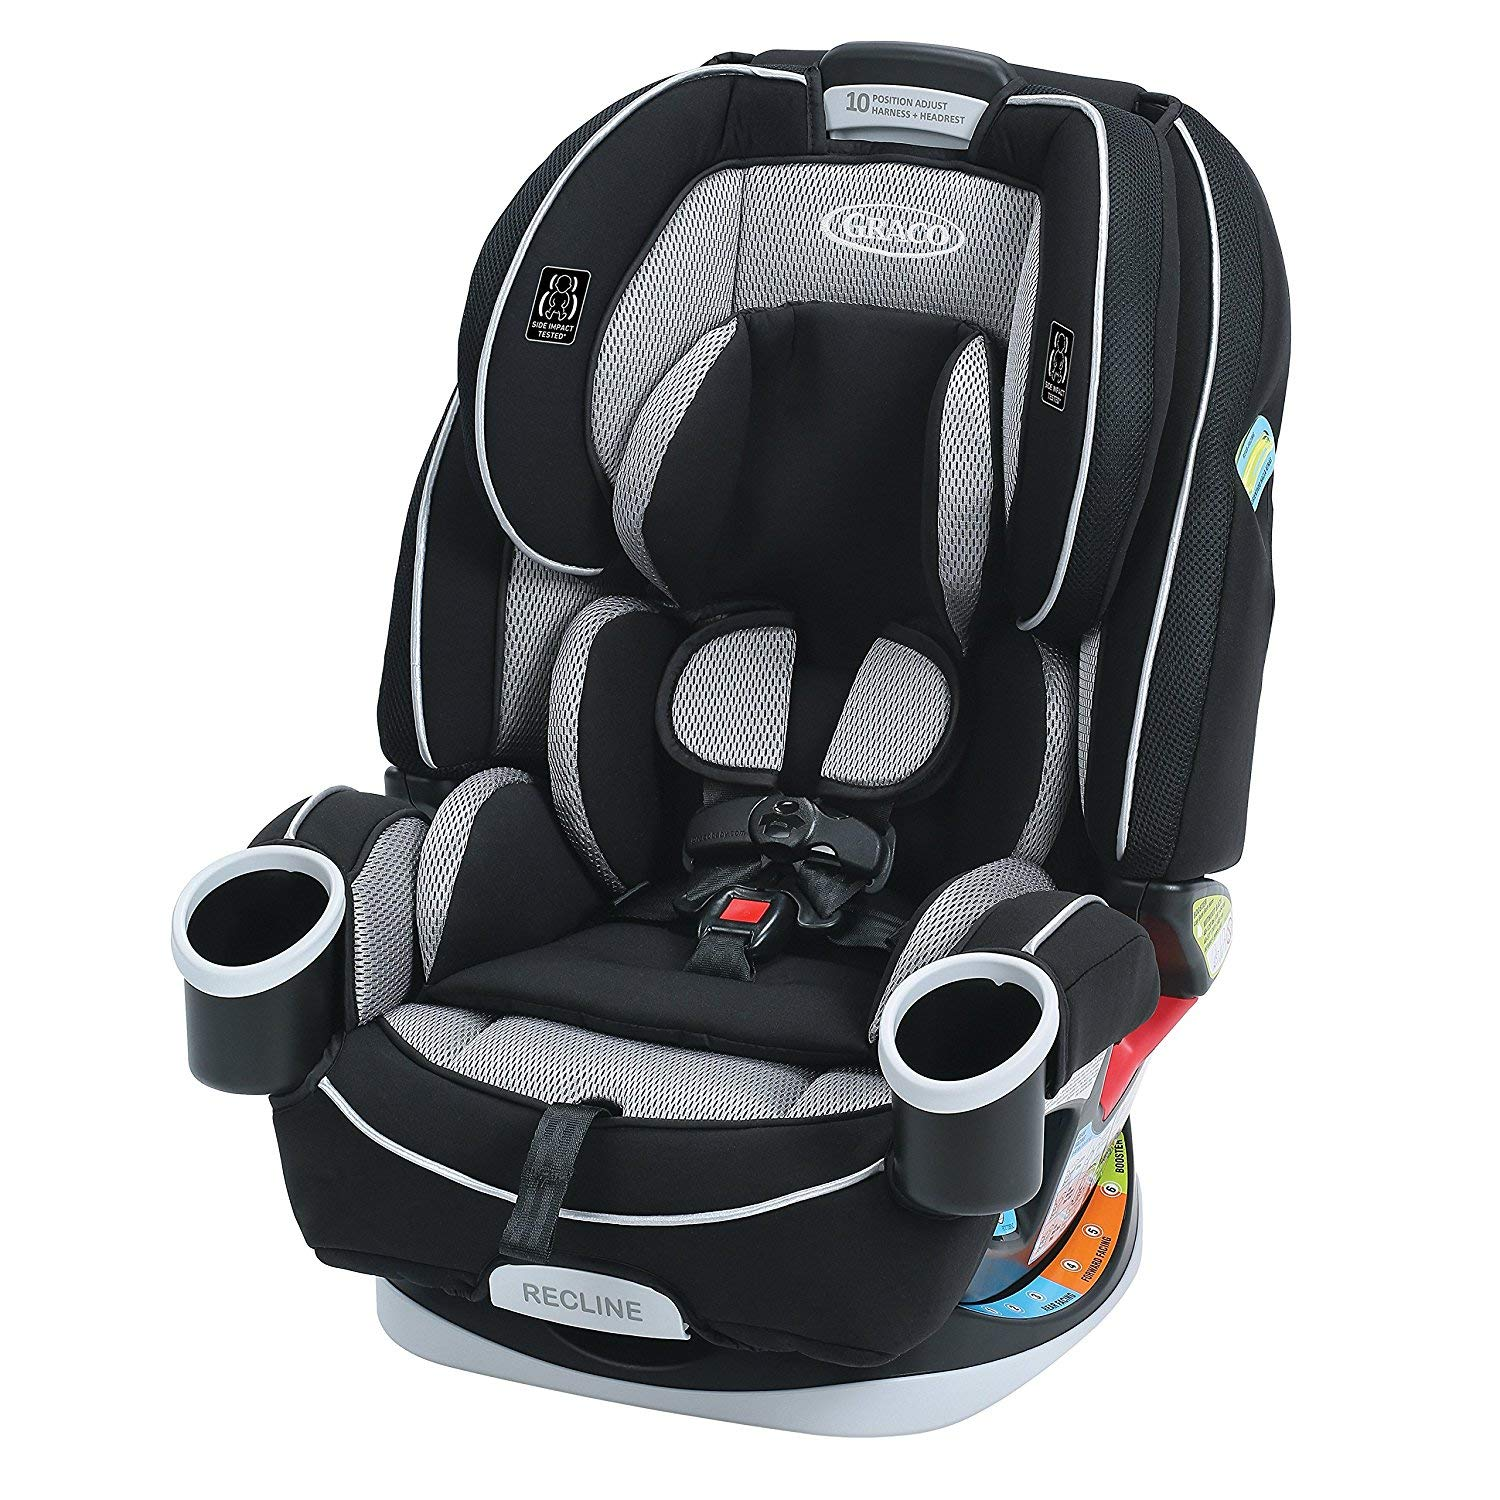 Top 7 Best Affordable Convertible Car Seats (2020 Reviews) 3